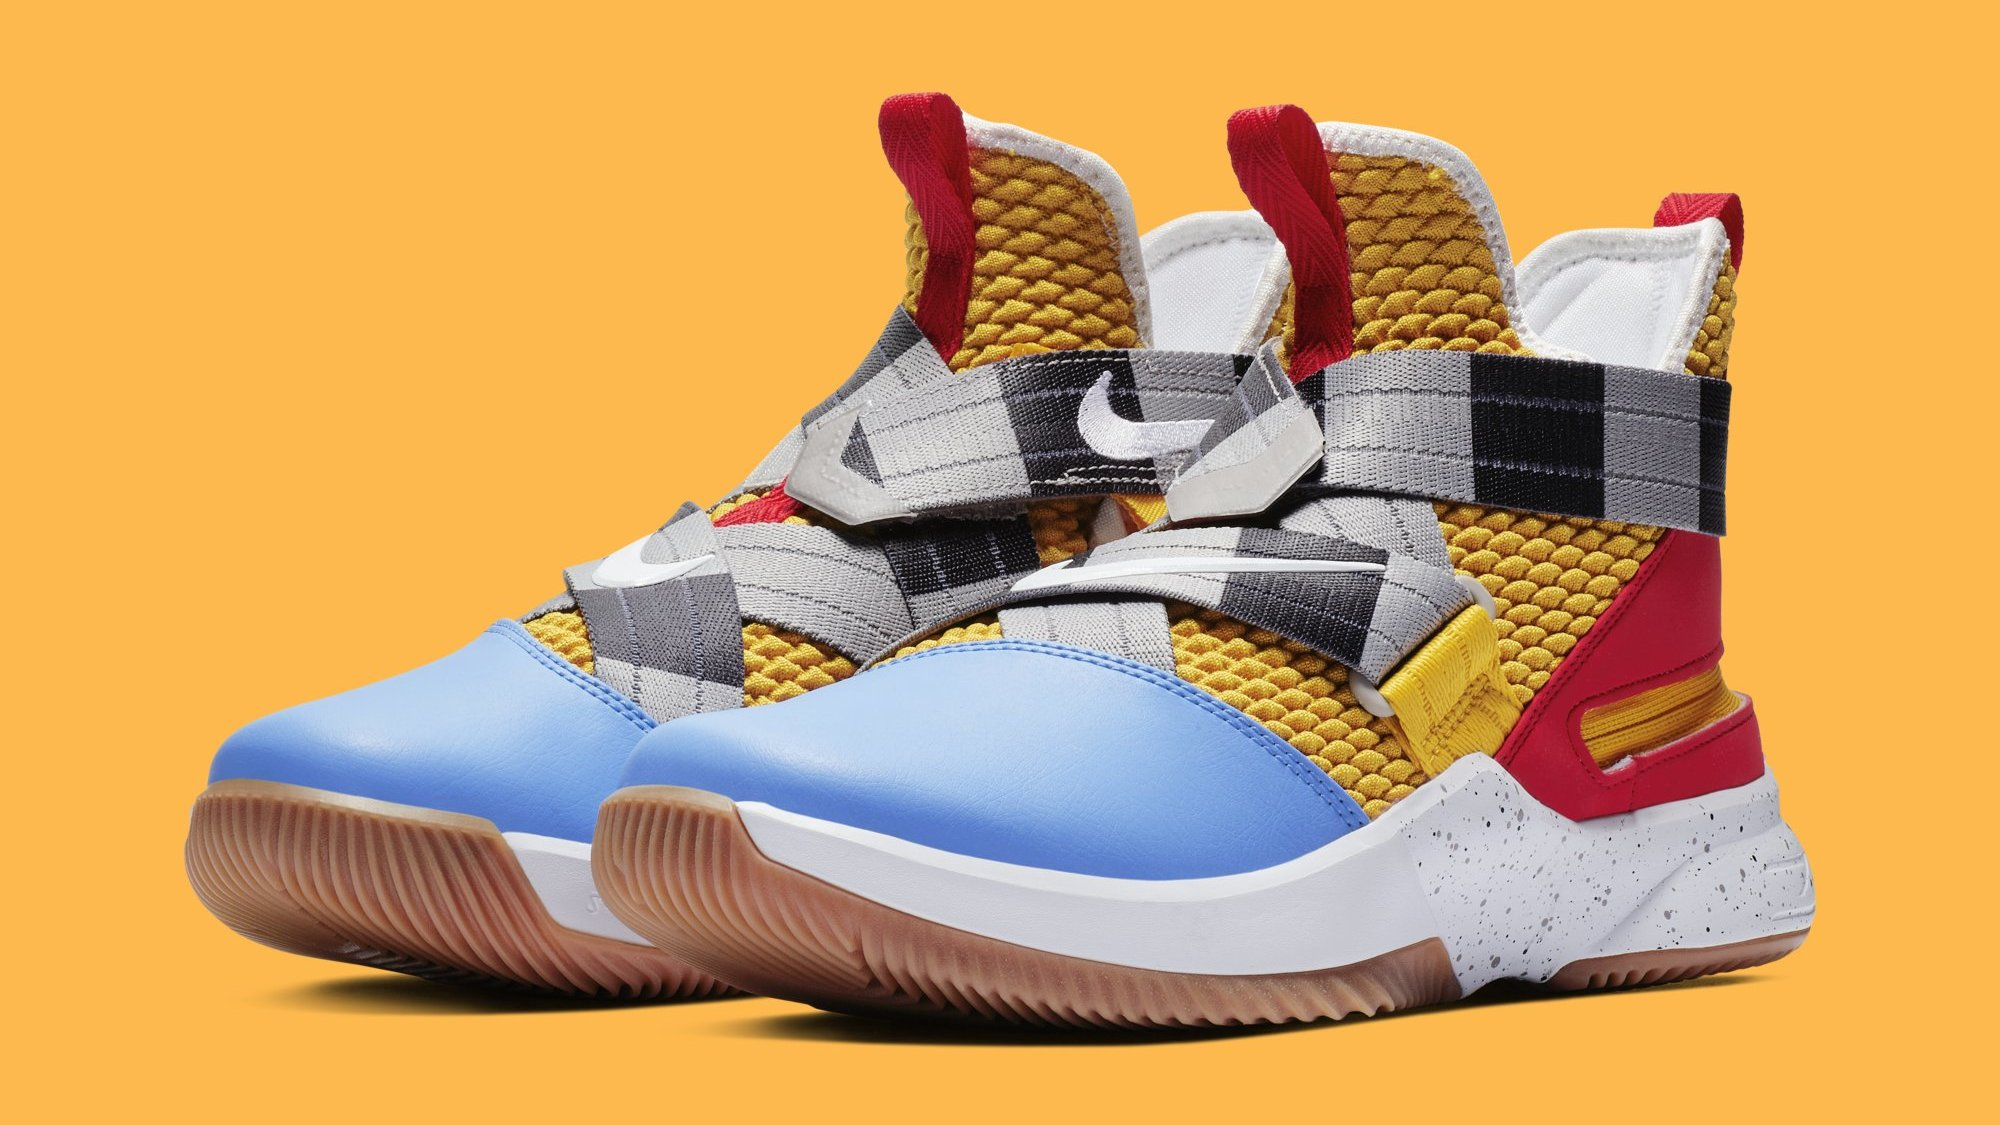 quality design 403c1 36a83 LeBron James  Infamous  Arthur  Meme Inspired This Soldier 12